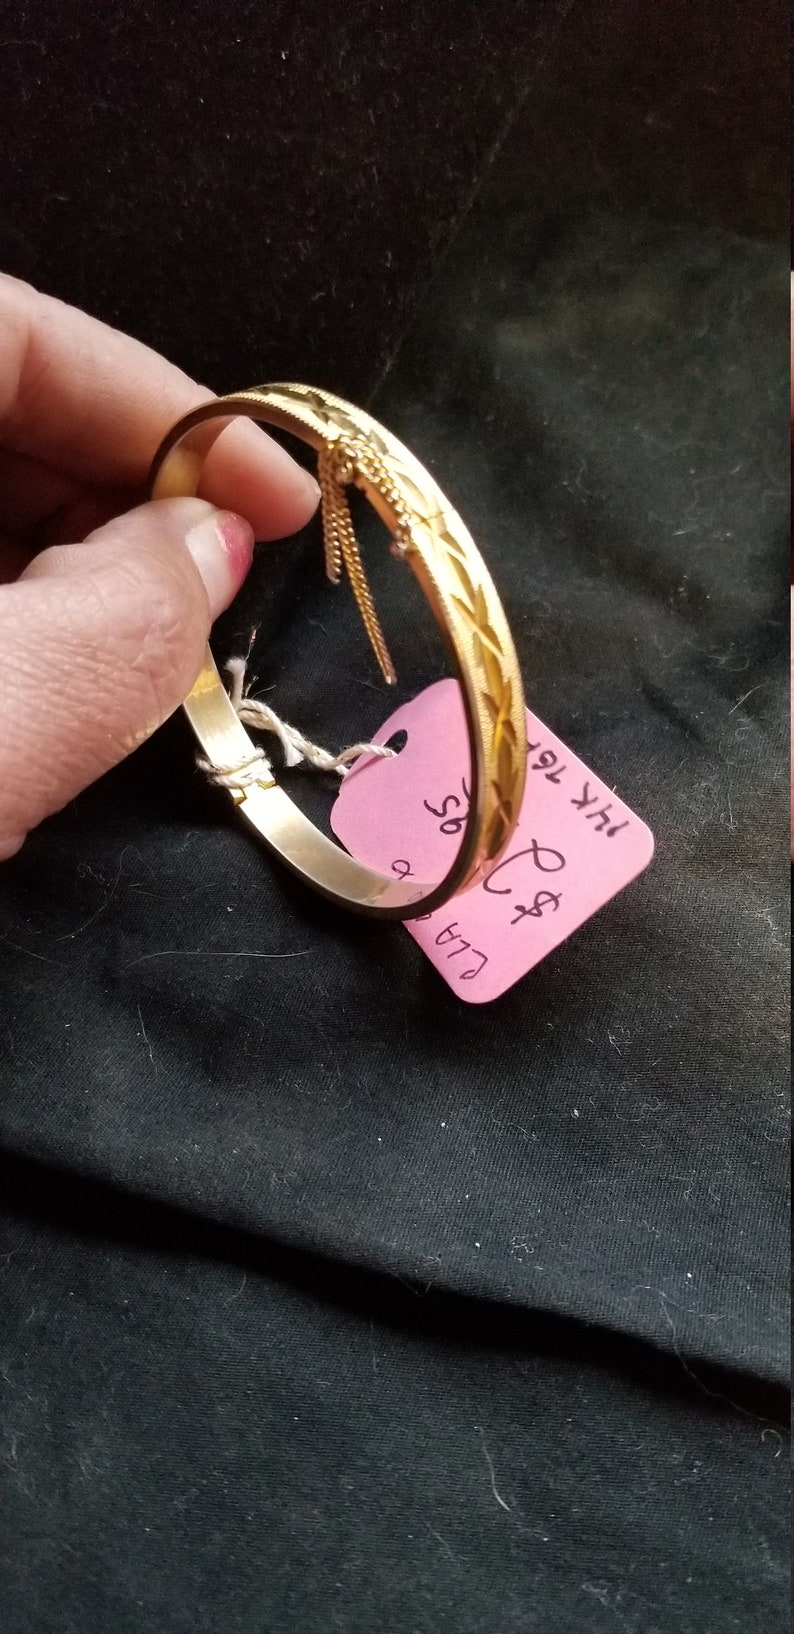 Bracelet gold design with safety chain